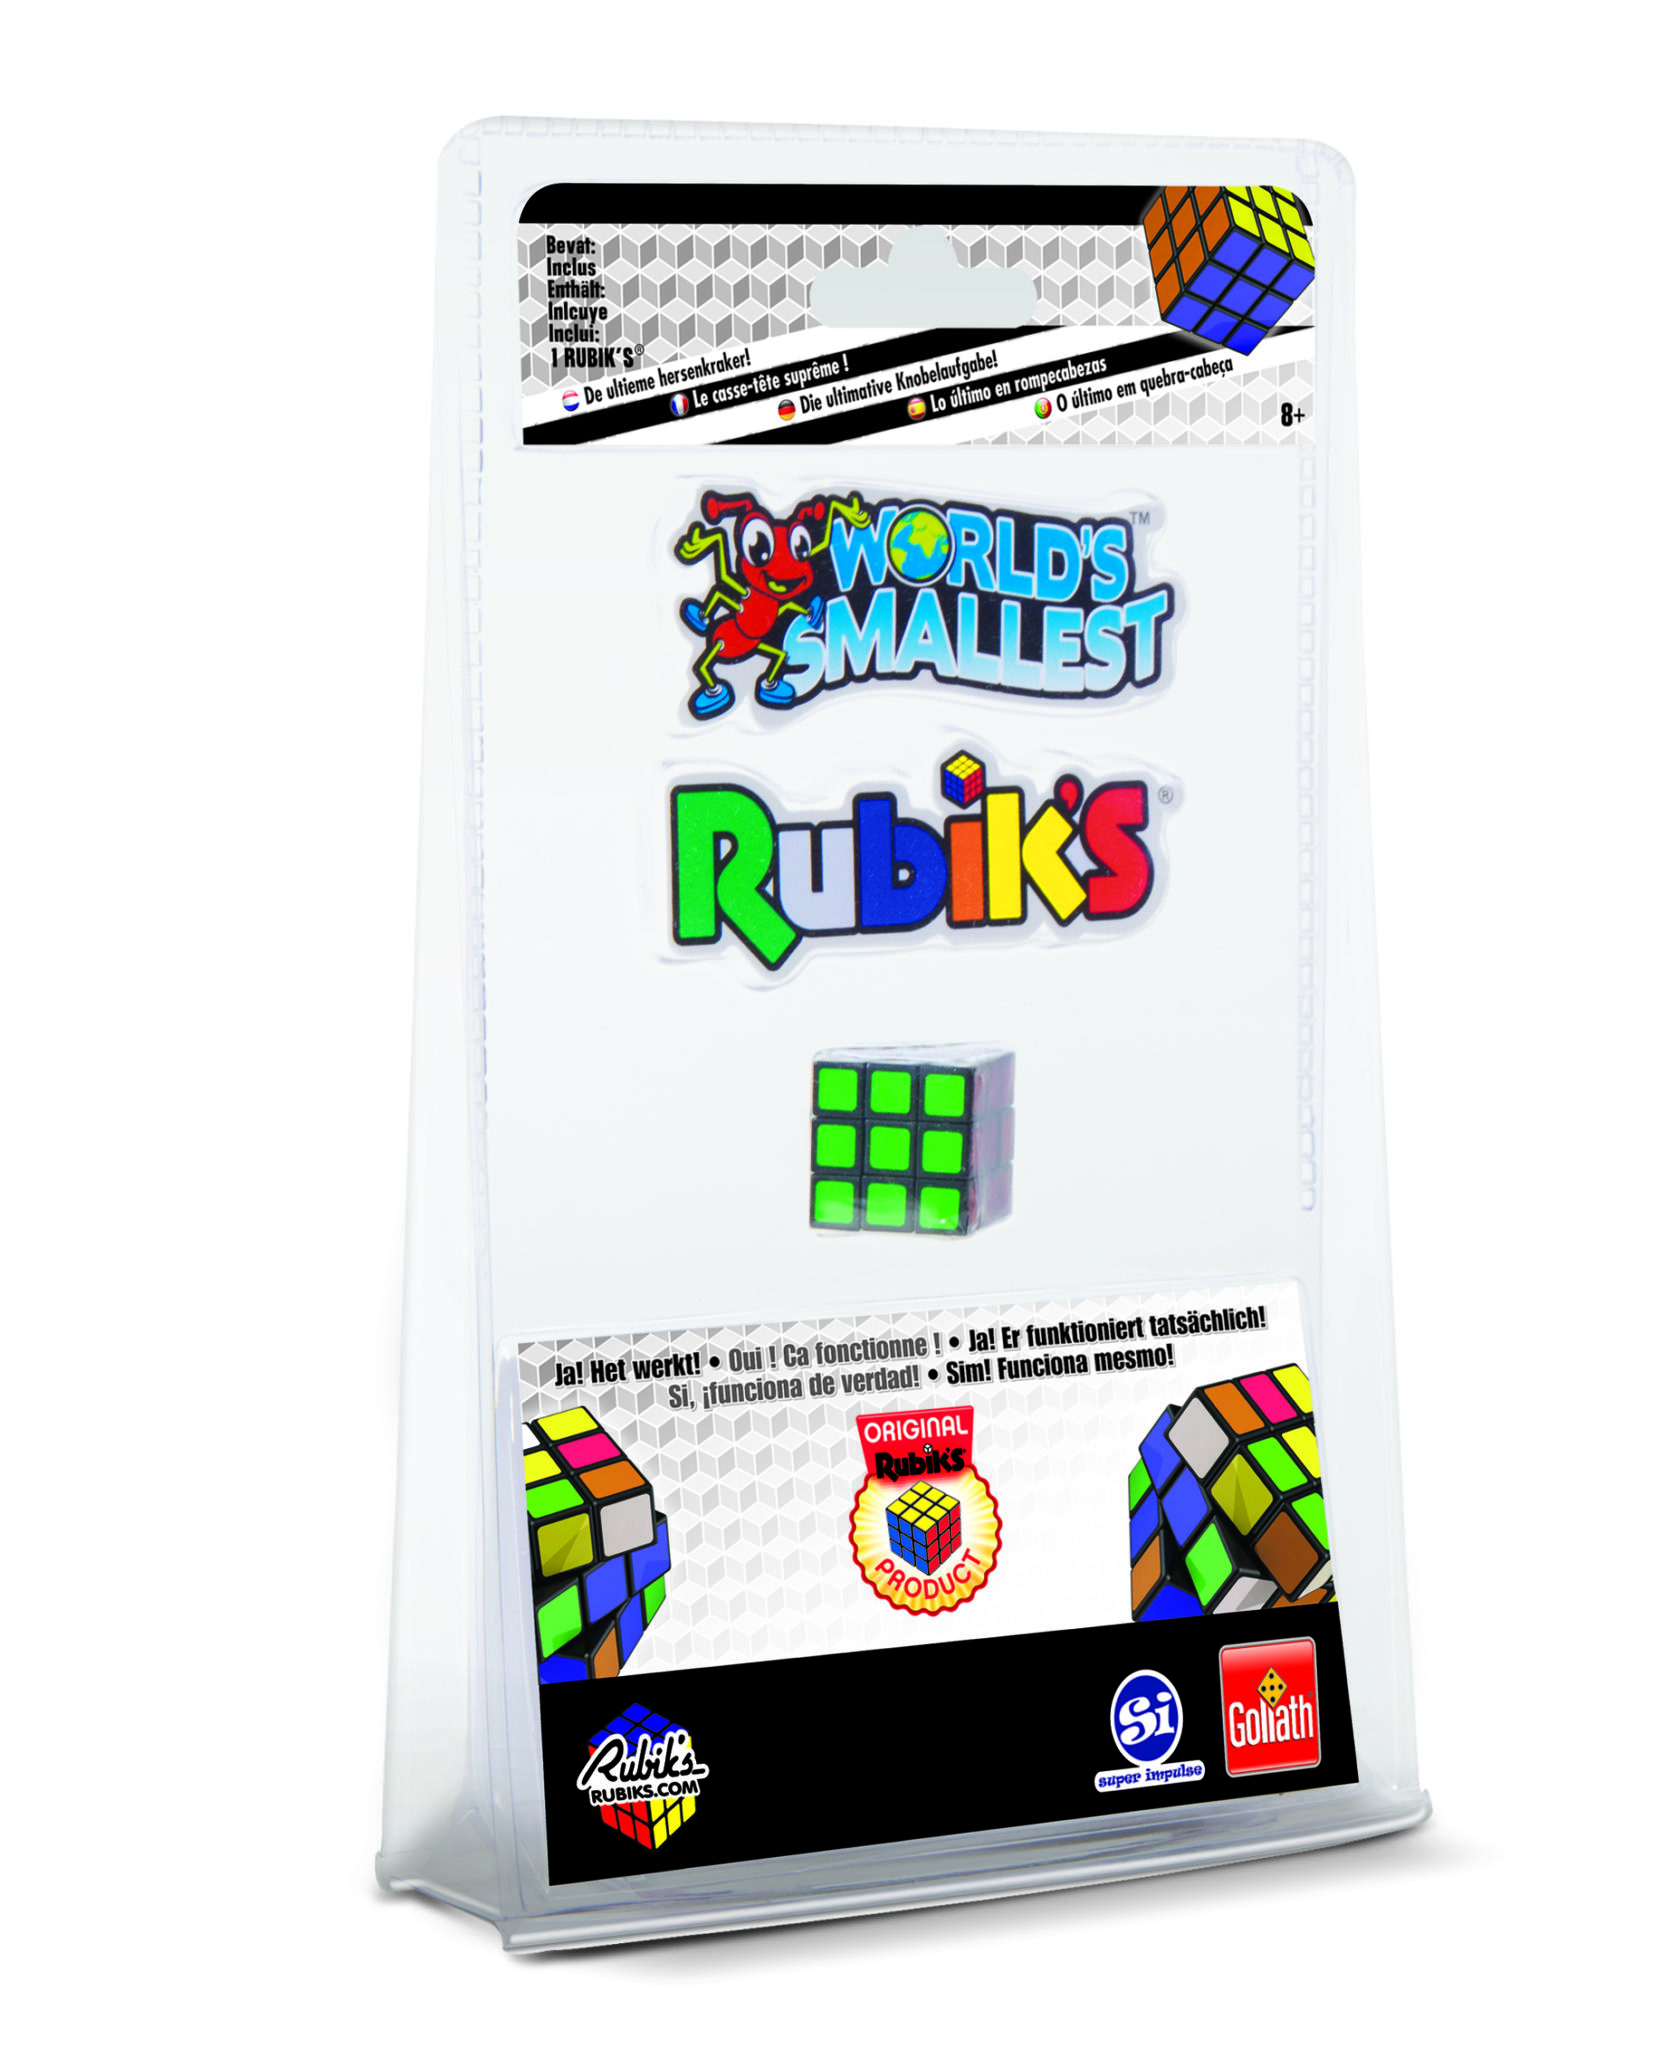 worlds smallest rubik 39 s cube goliath toys goliath toys. Black Bedroom Furniture Sets. Home Design Ideas